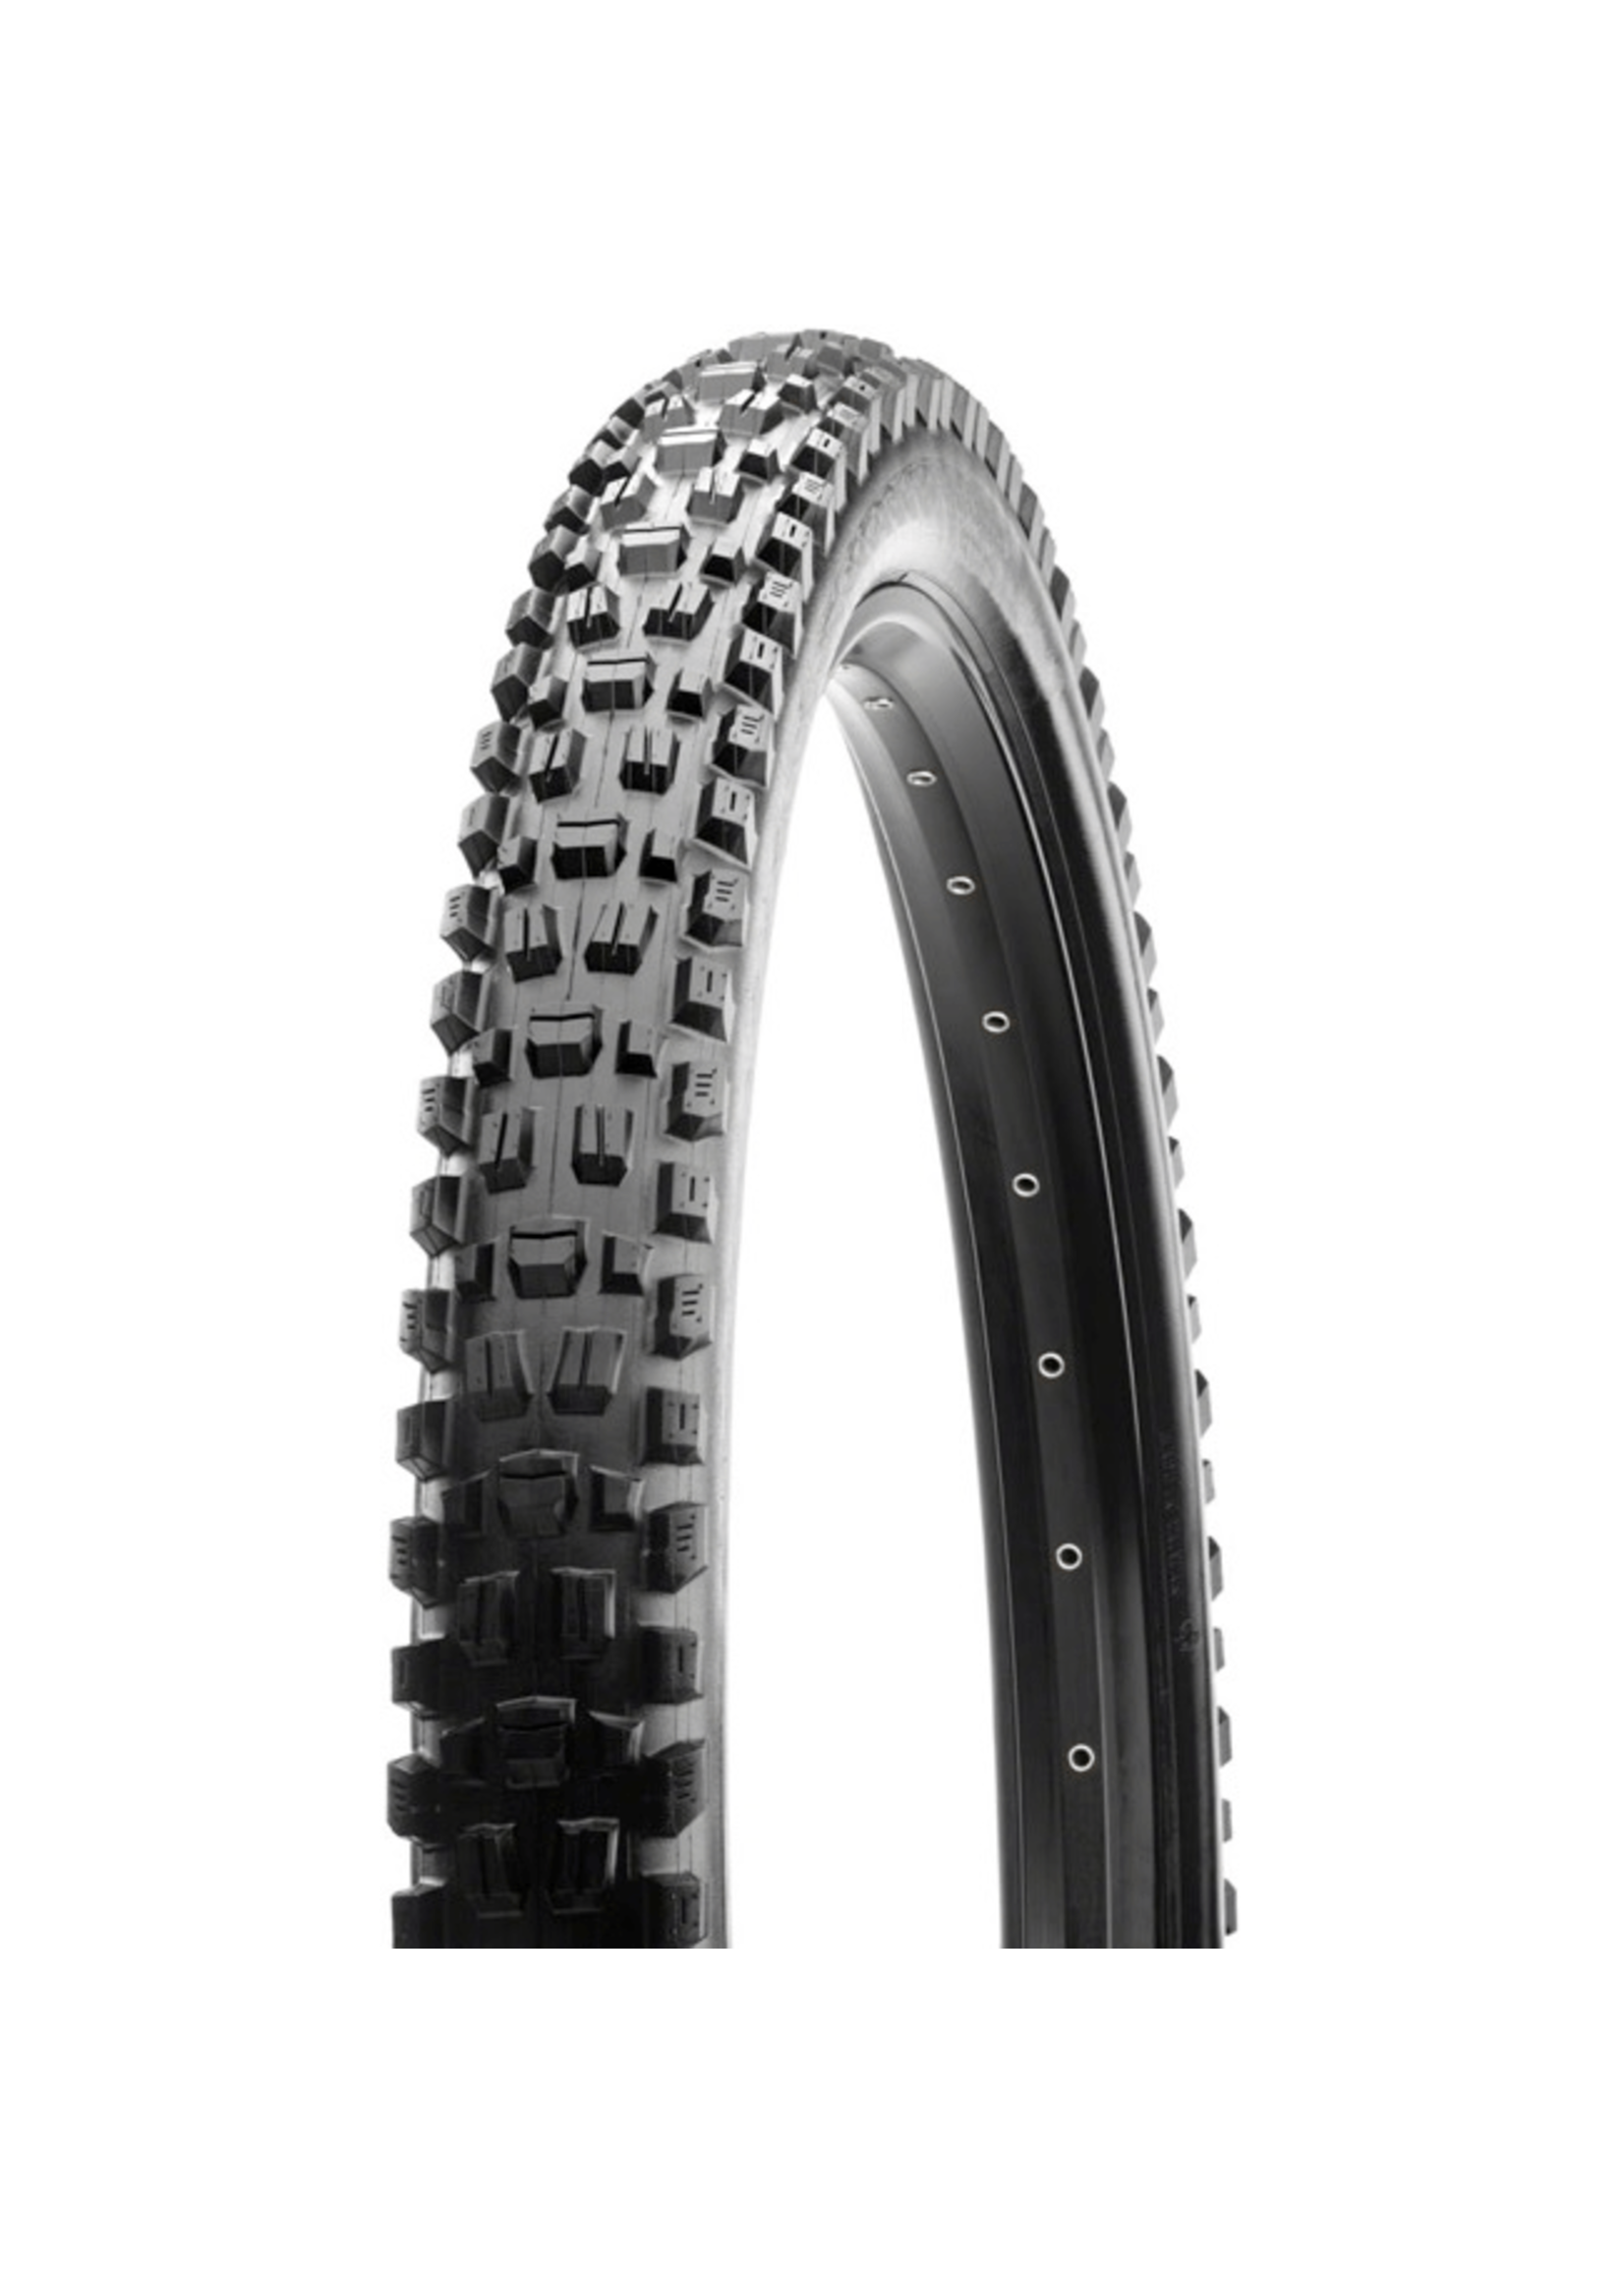 Maxxis Maxxis, Assegai, Tire, 29''x2.50, Folding, Tubeless Ready, 3C Maxx Terra, EXO, Wide Trail, 60TPI, Black